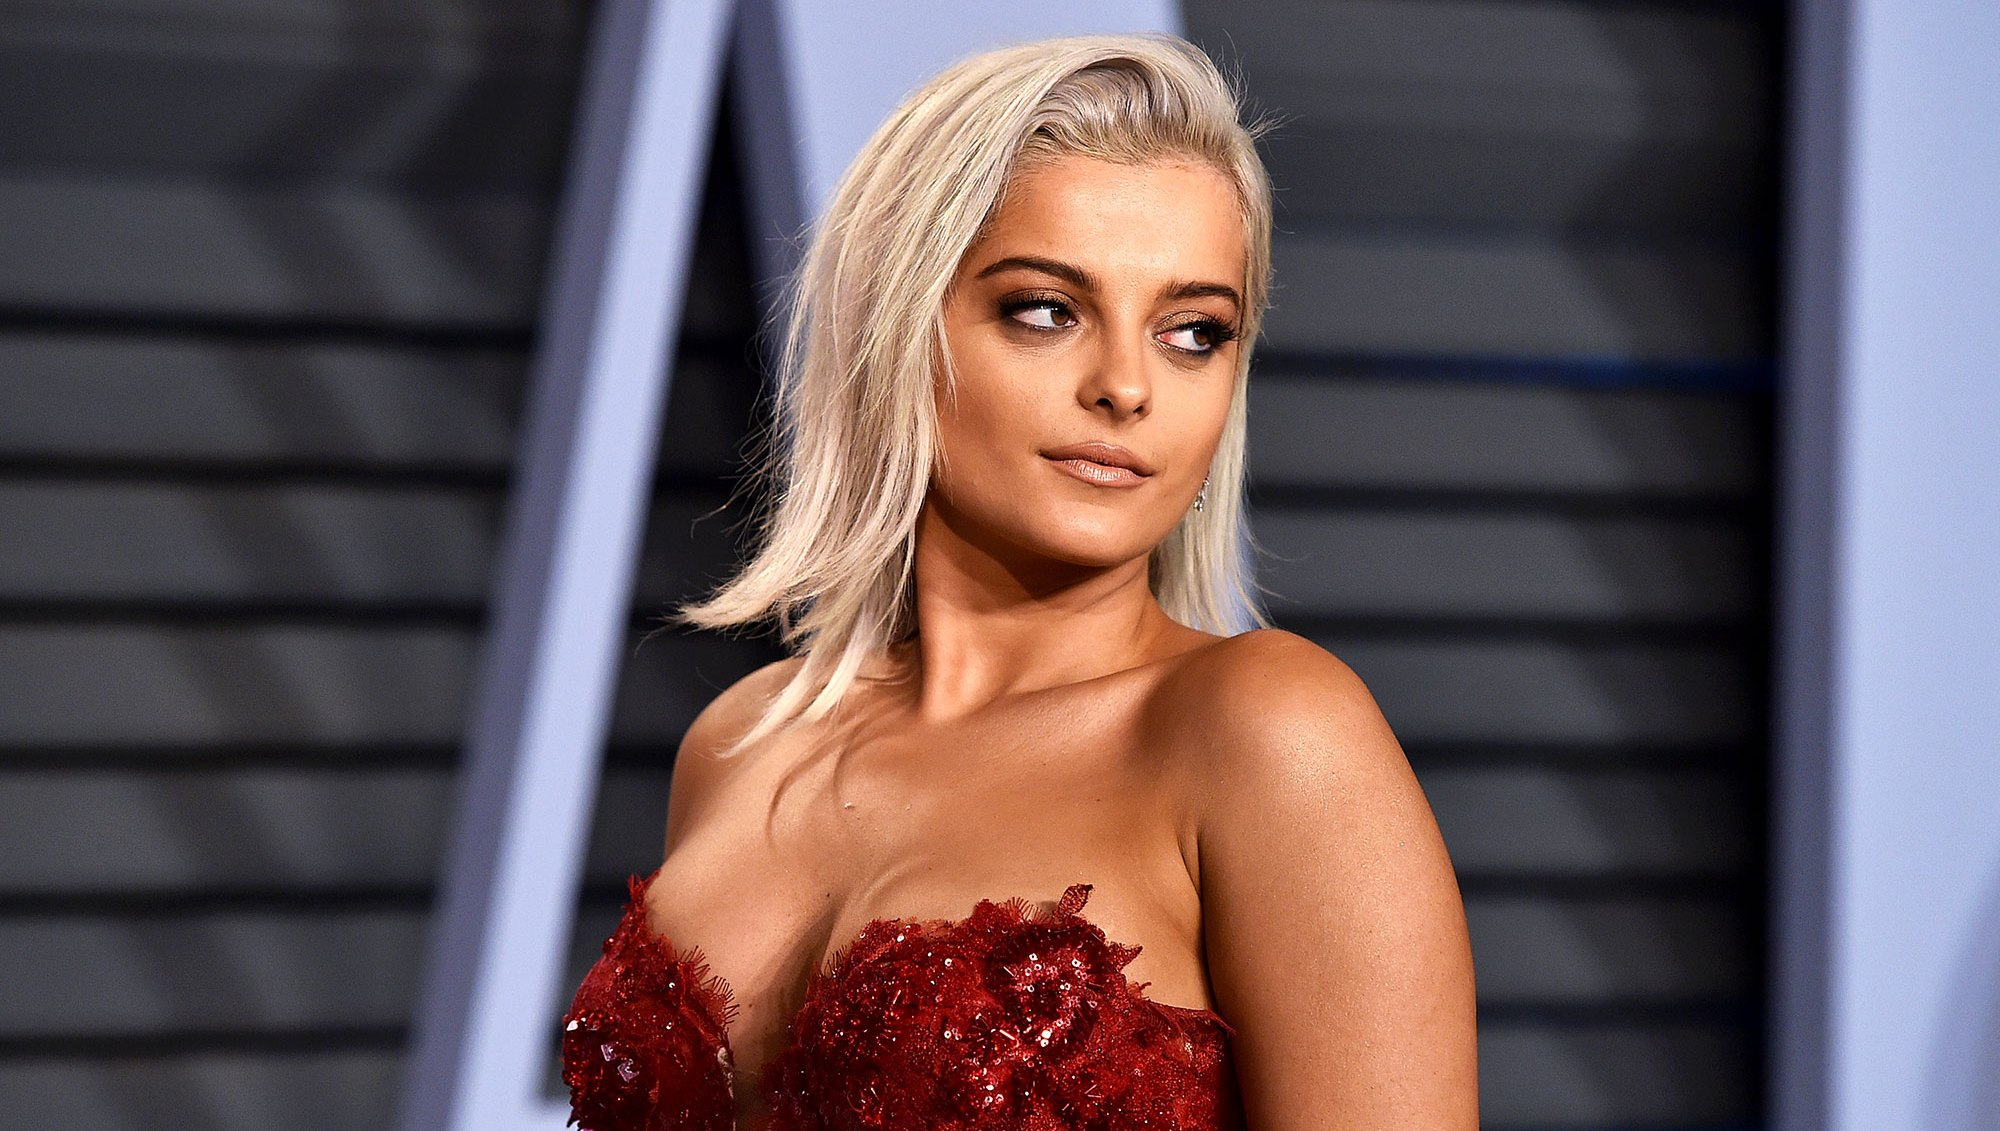 Bebe Rexha Posts Football Player Trying to Hit On Her